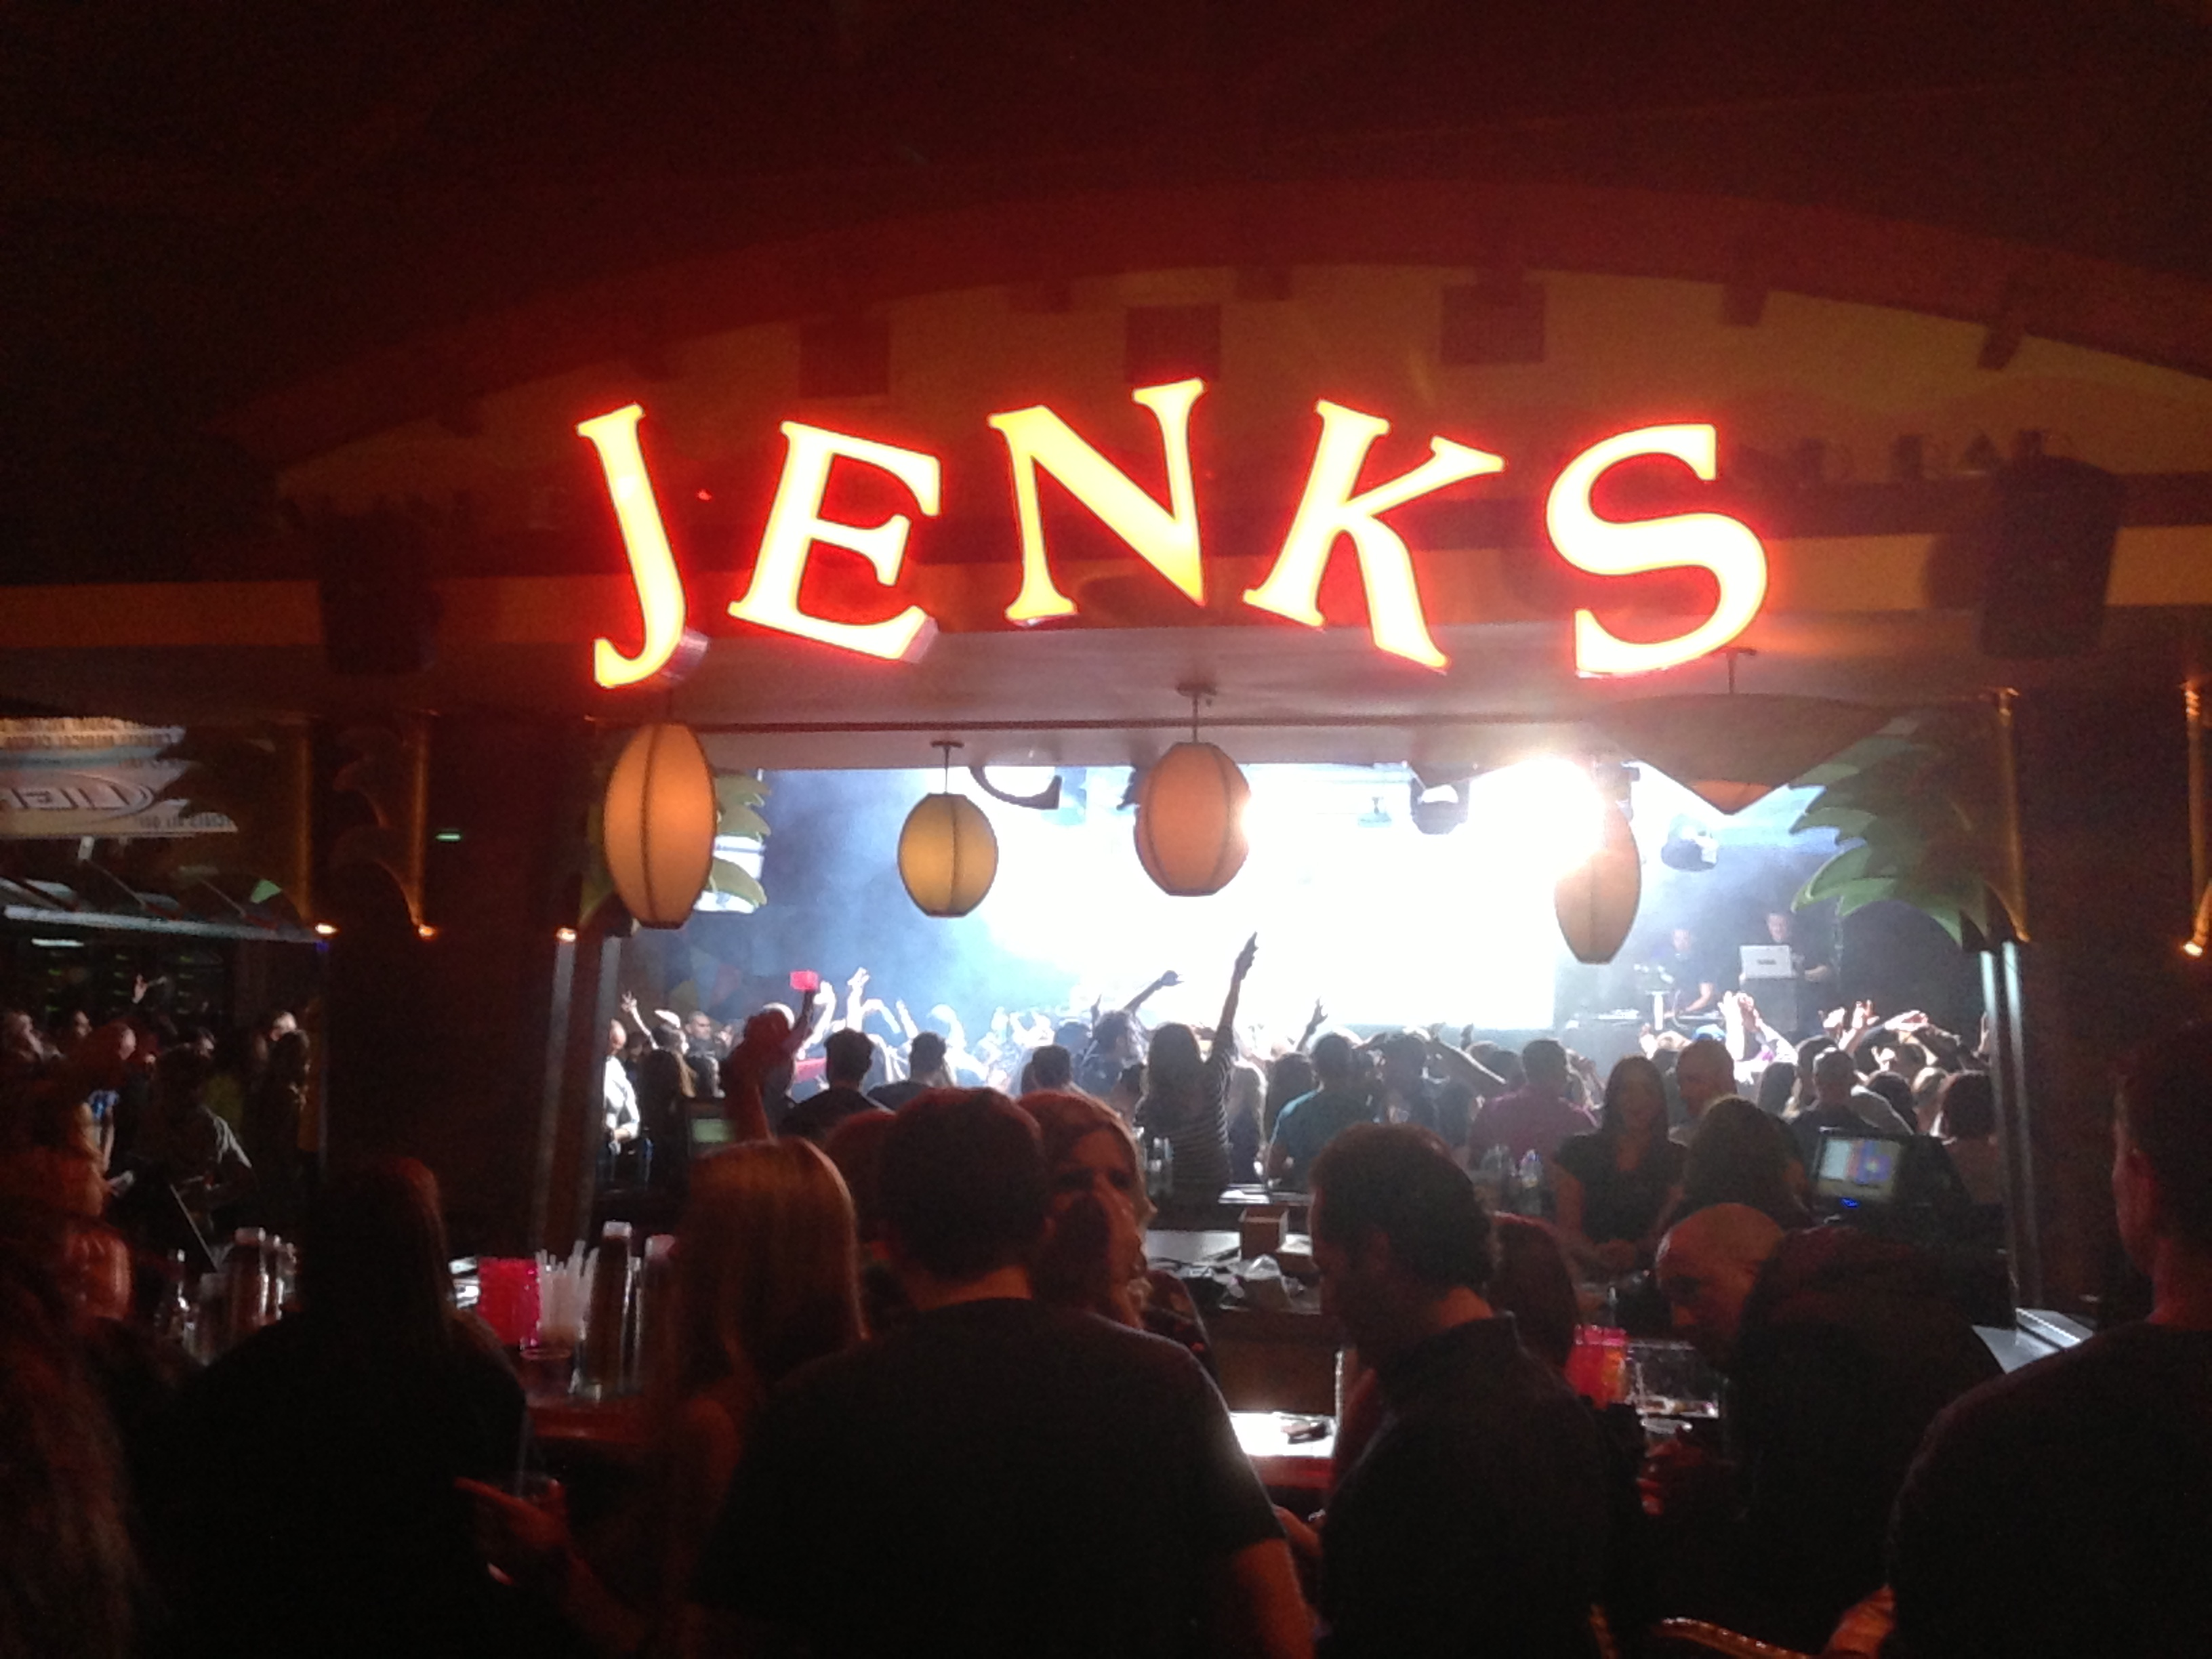 Jenks Club, Point Pleasant Beach (Photo: Daniel Nee)